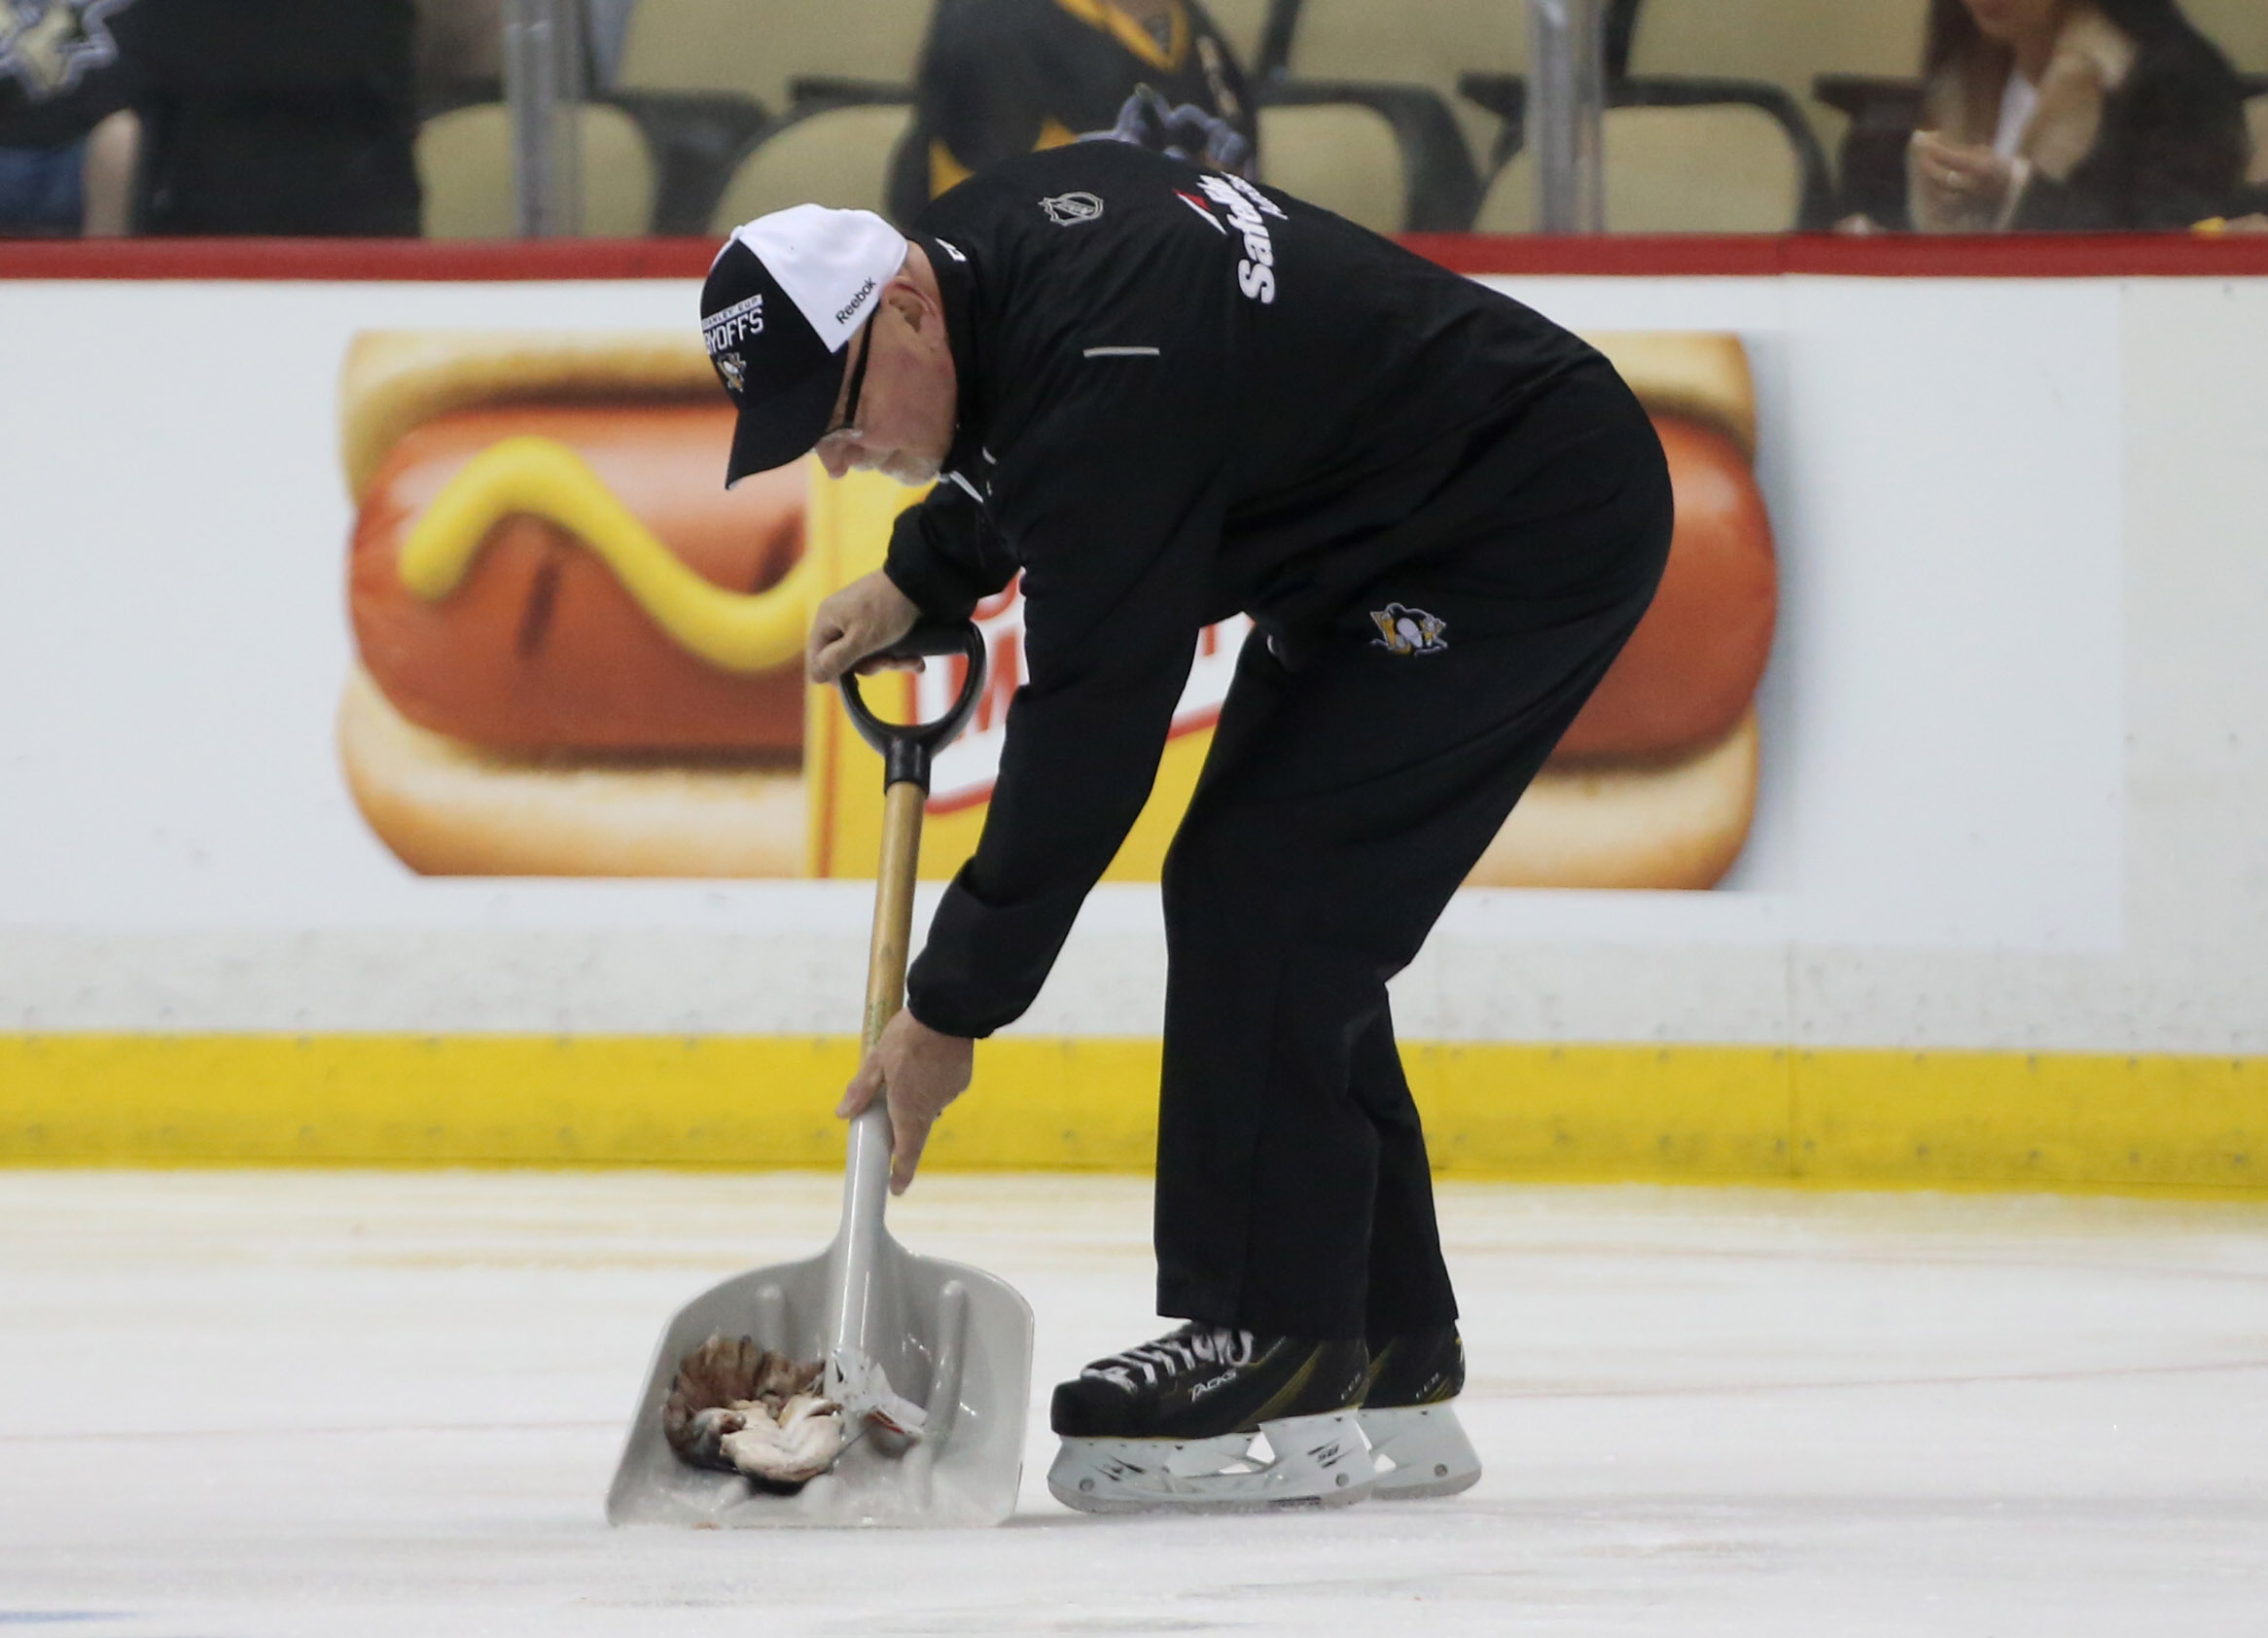 Throwing A Dead Catfish On The Ice In Pittsburgh Is Frowned Upon: Thrower Being Charged (video)